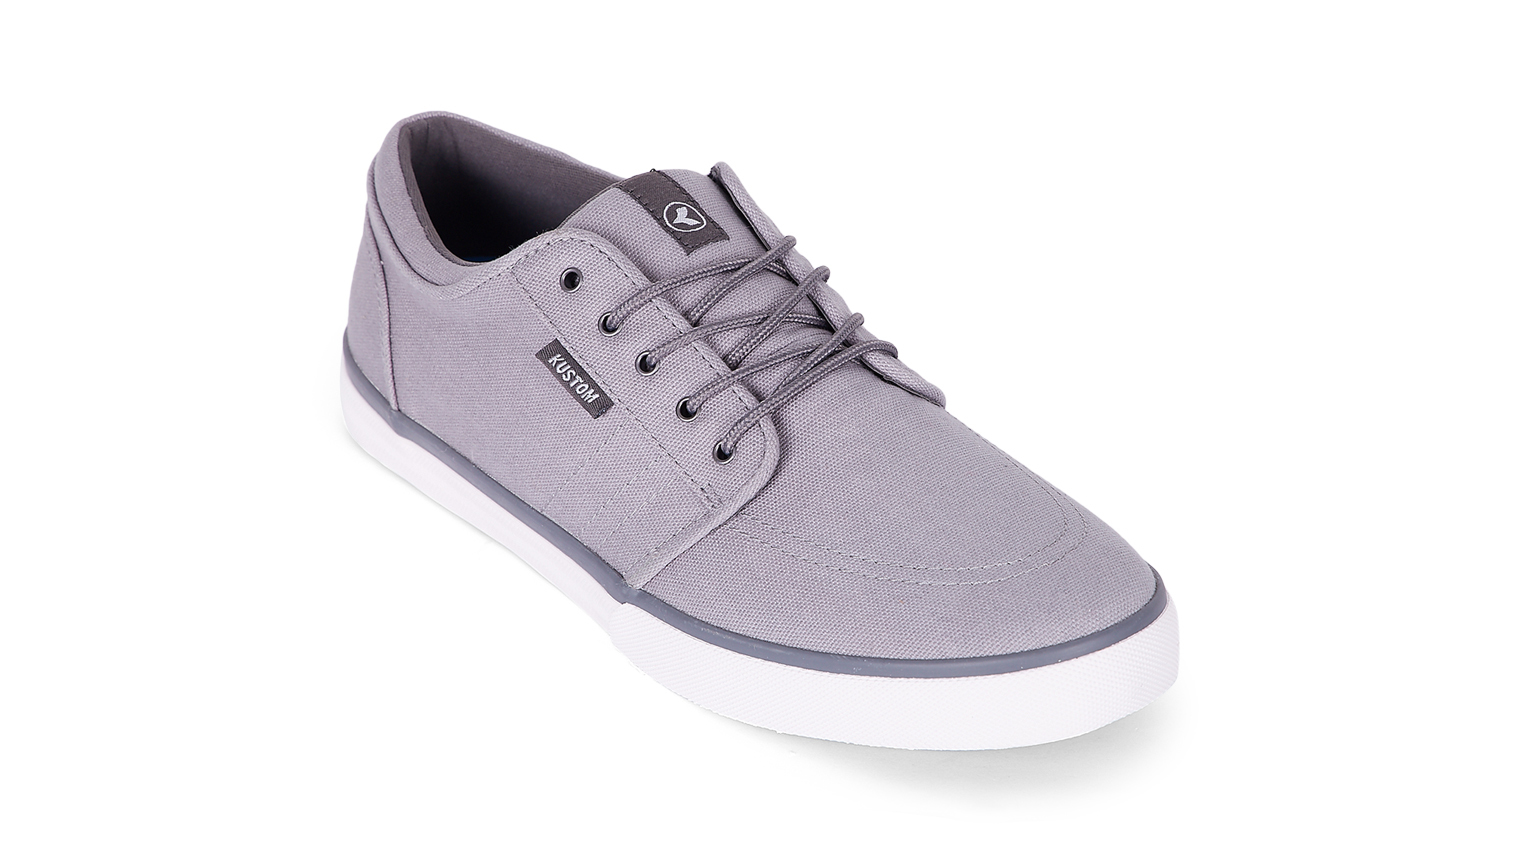 KUSTOM SHOES REMARK 2 SHOE / ALL GREY